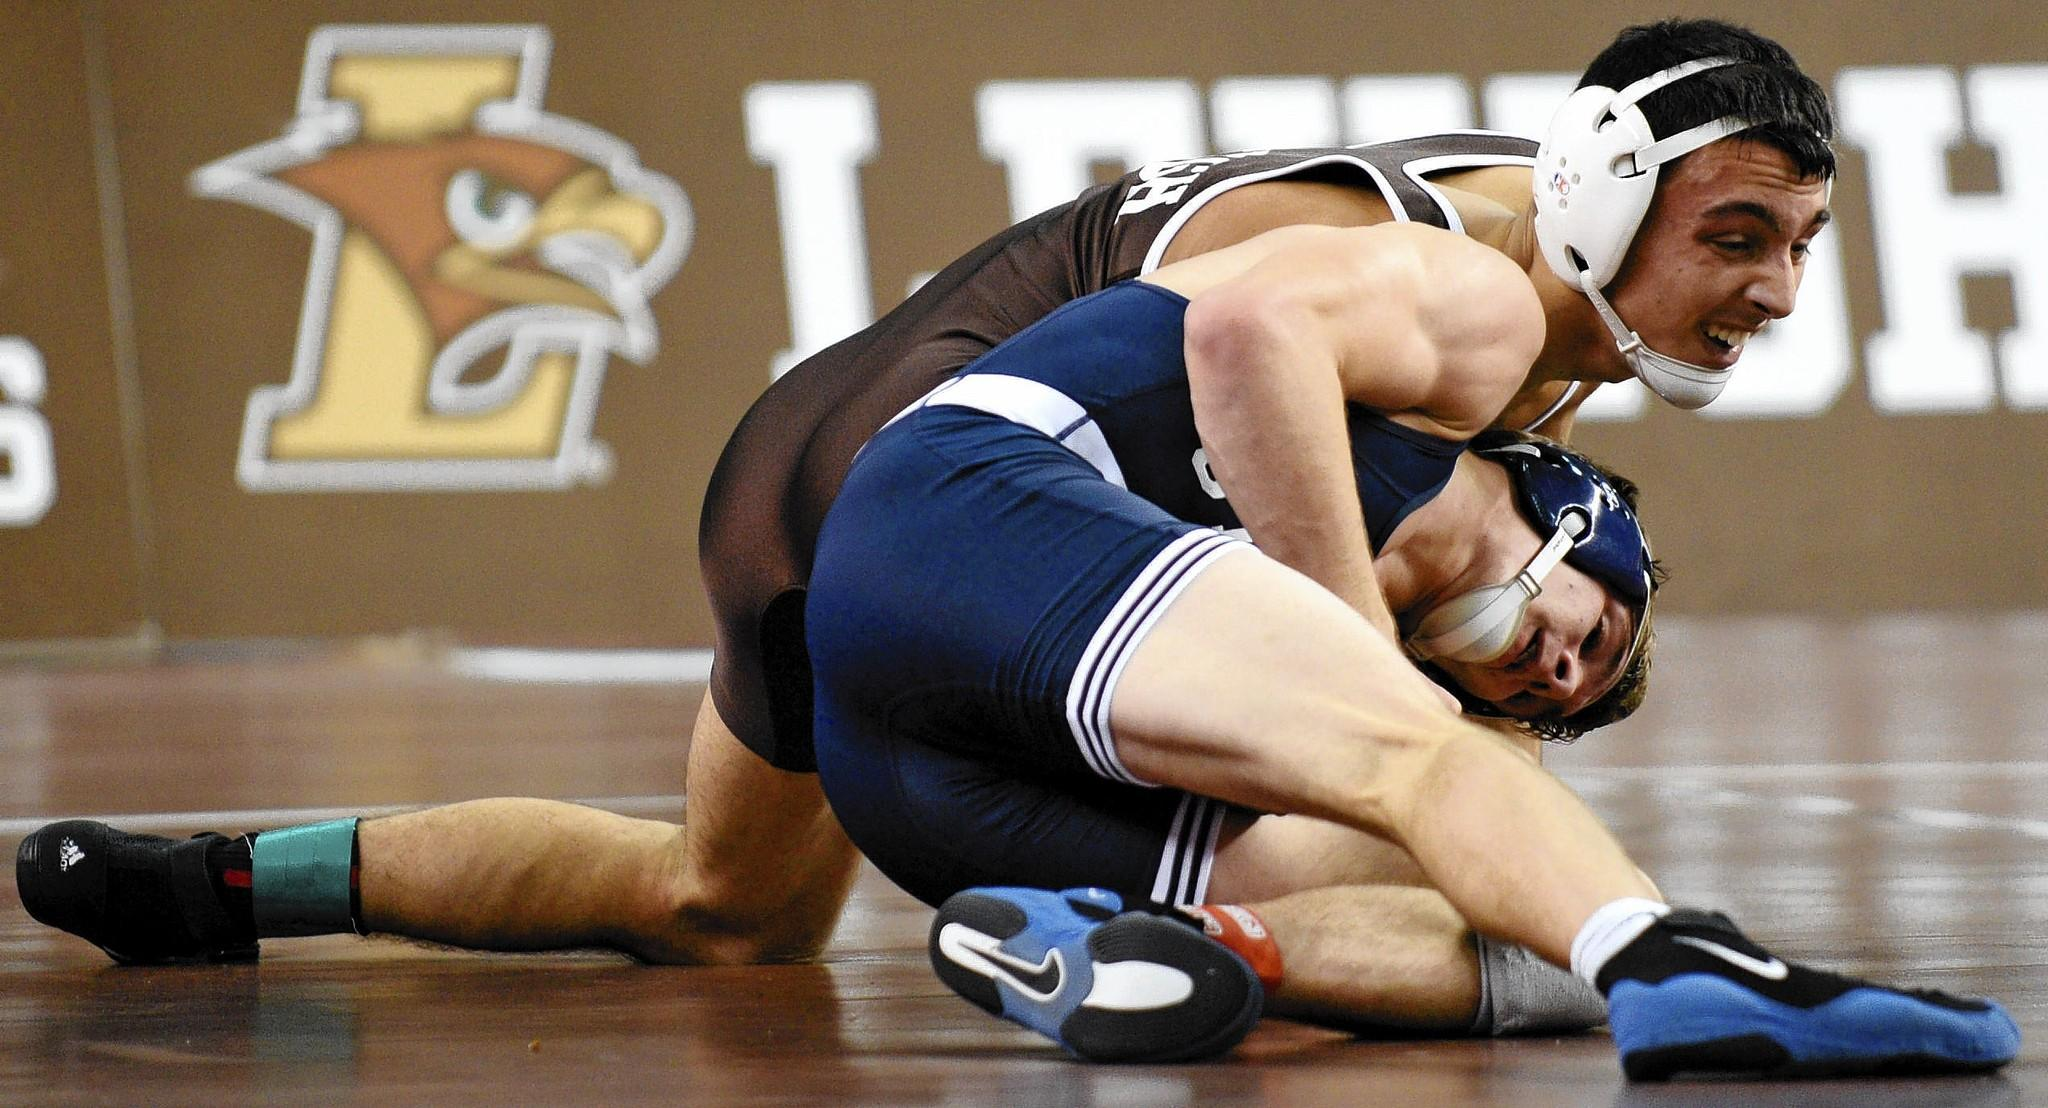 Mitch Minotti (top) became the first Lehigh freshman to win an undergraduate Midlands championship.